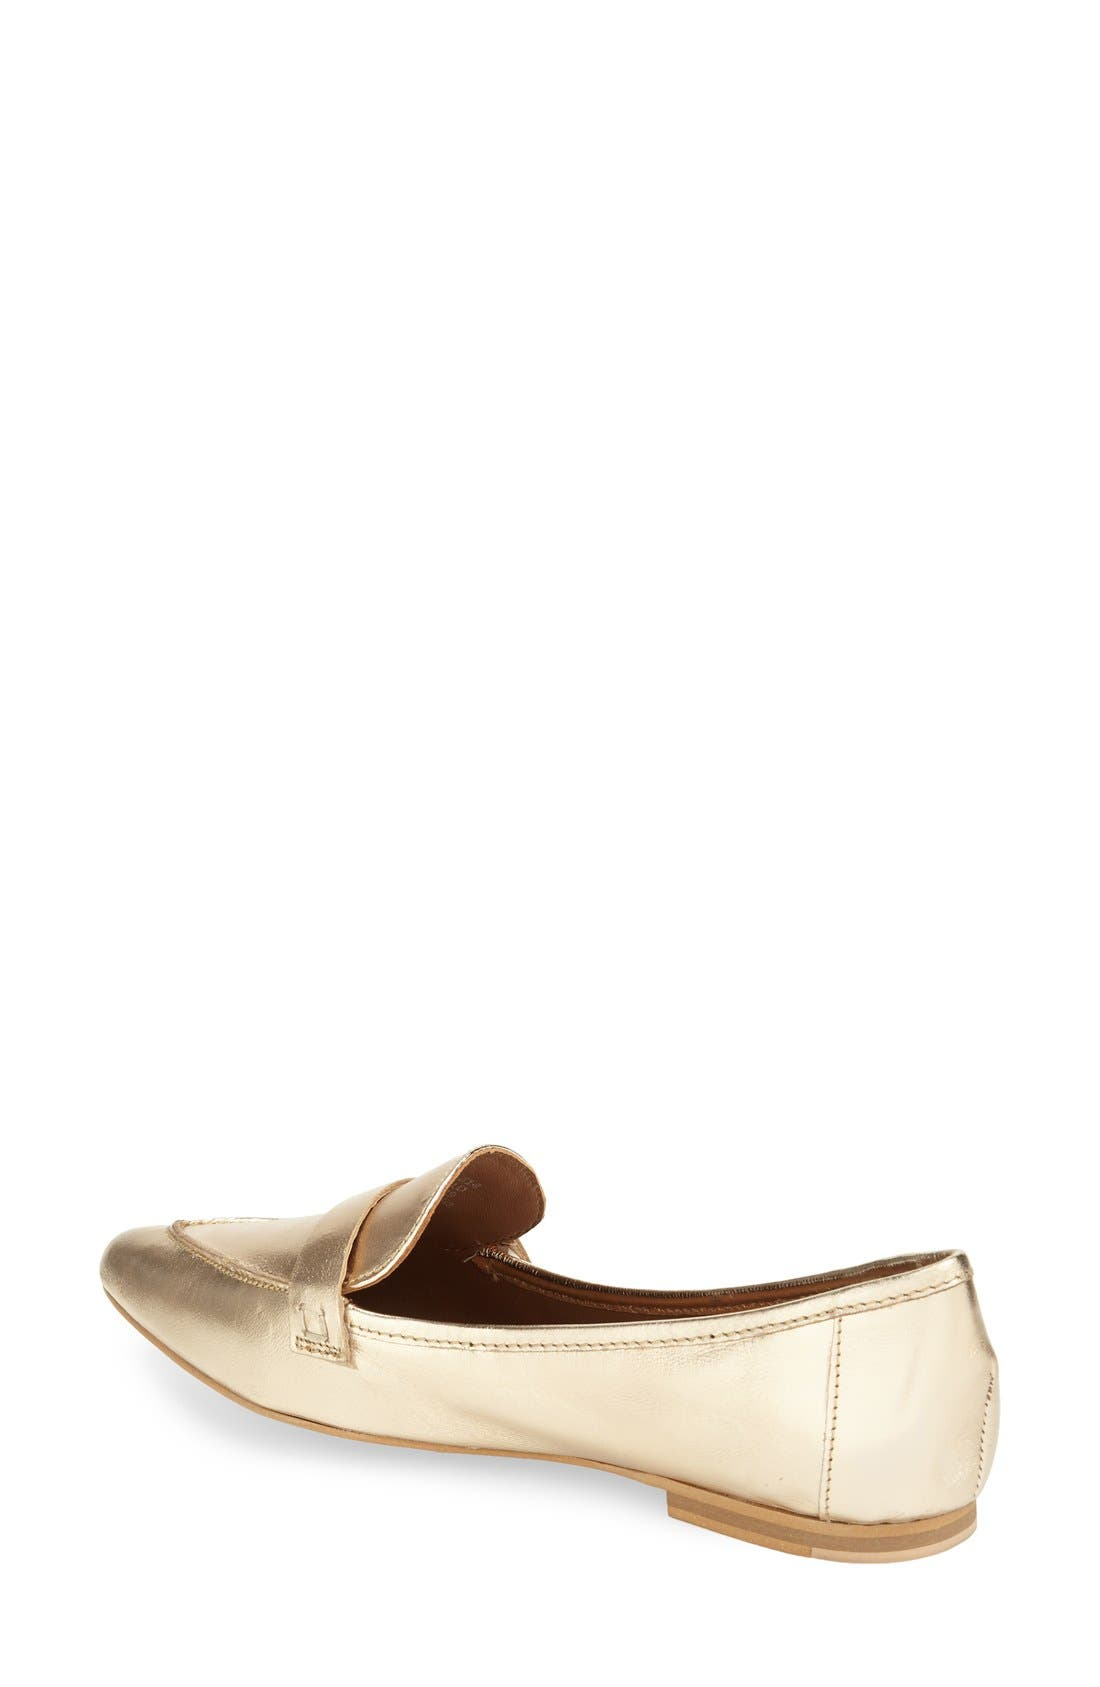 Alternate Image 2  - Topshop Kimi Loafer (Women)